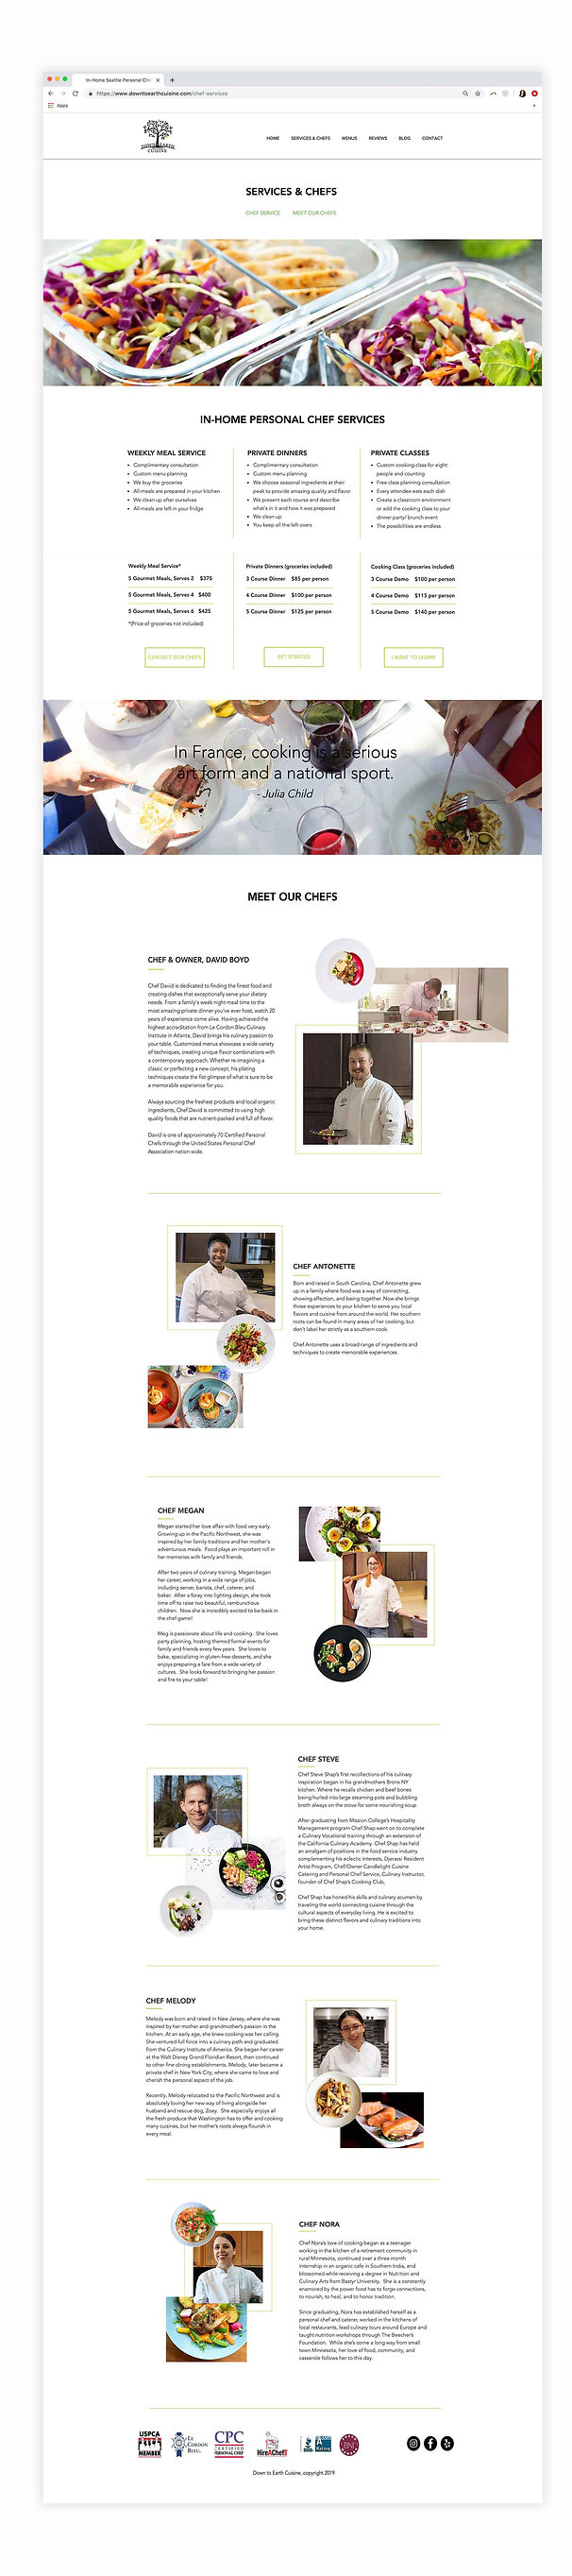 David-Boyd-Chefs-and-services-BS-Website